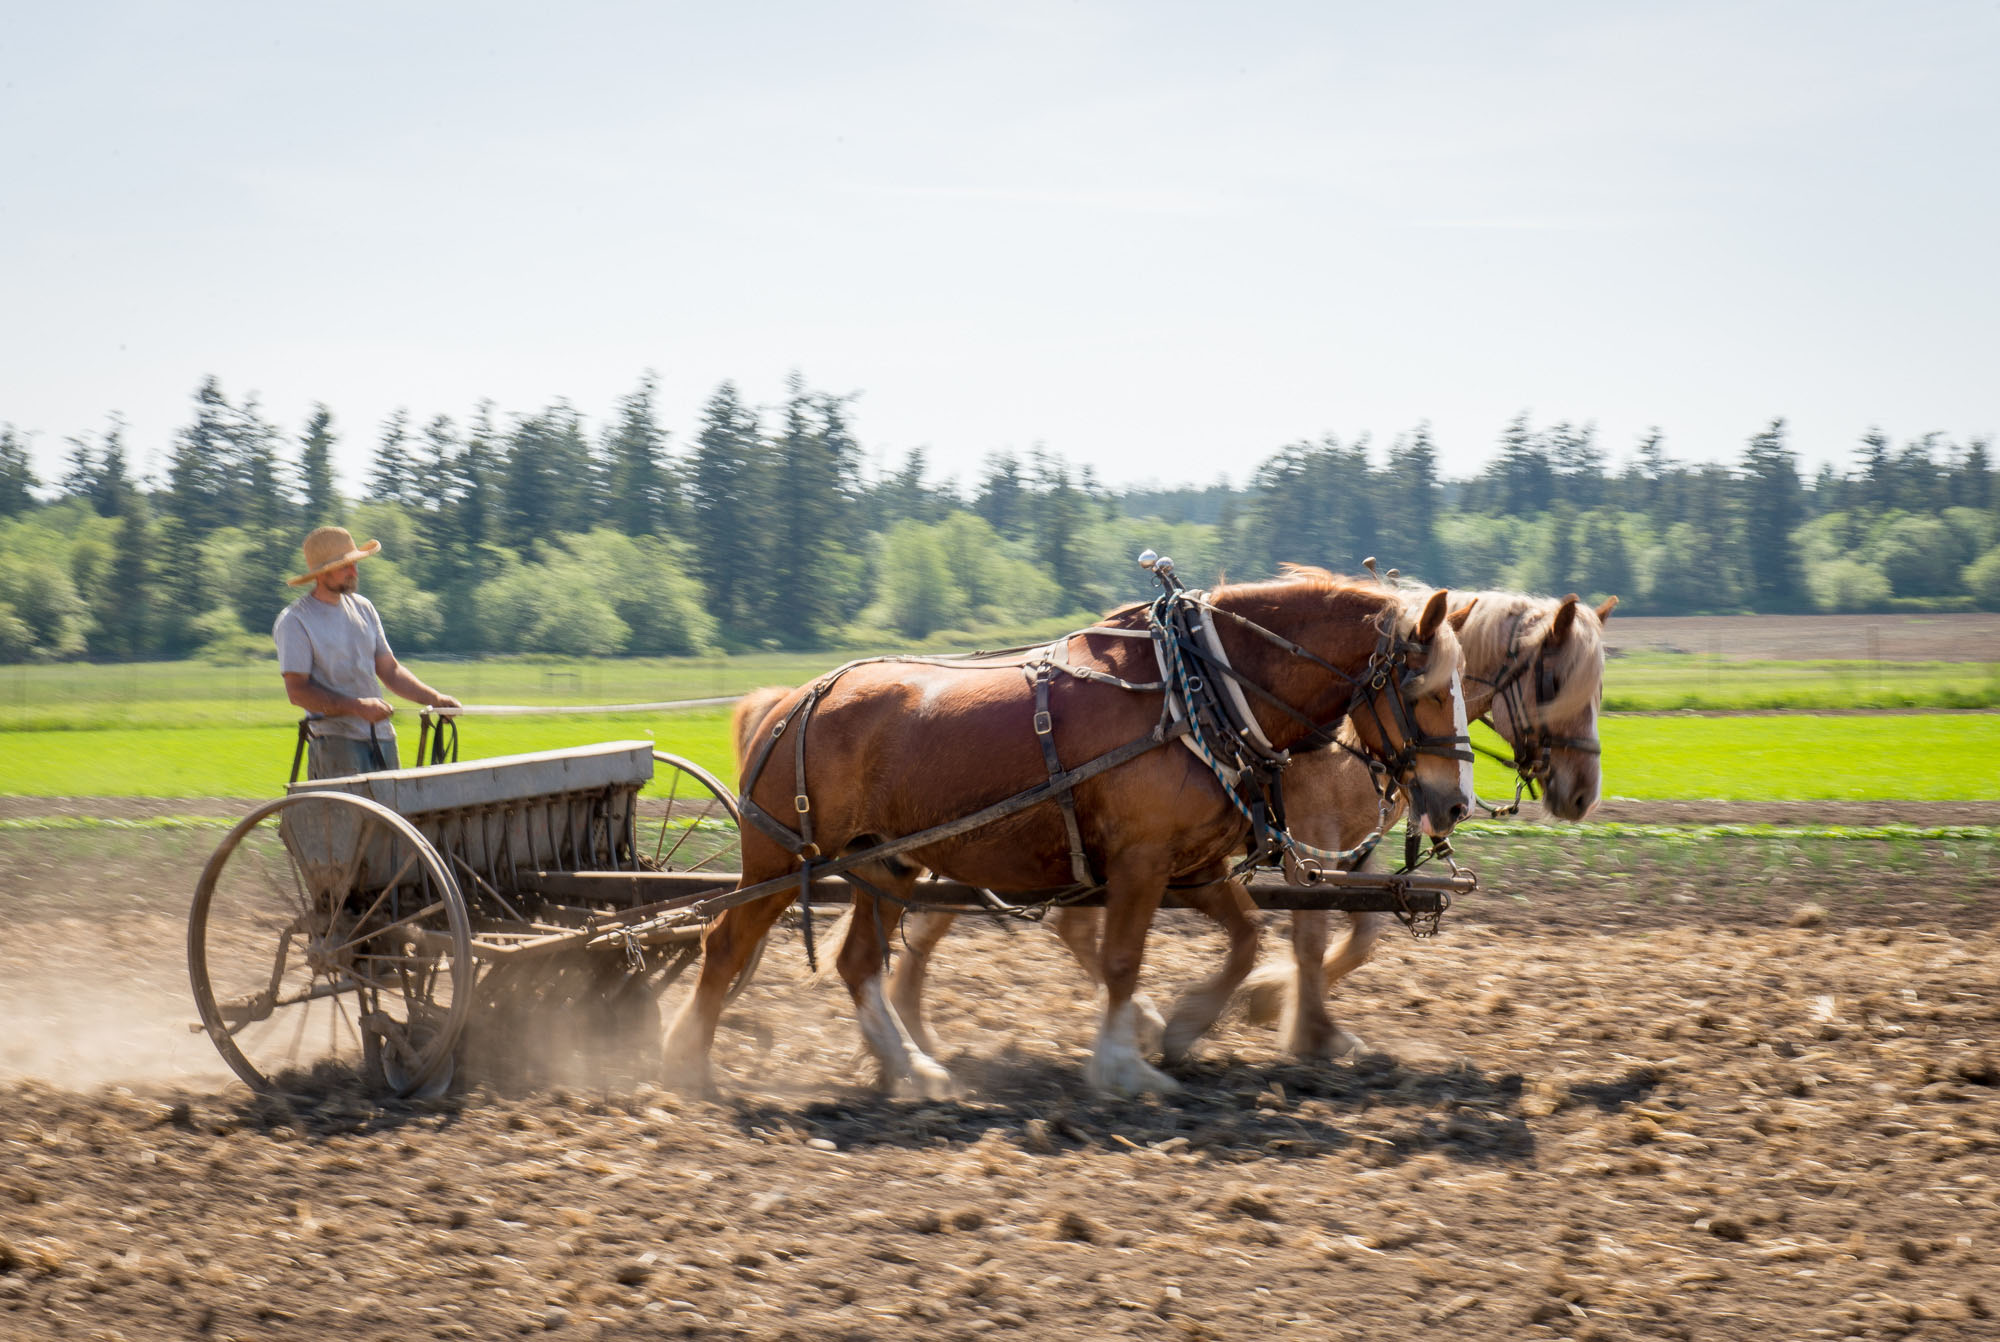 Farming - the old fashioned way